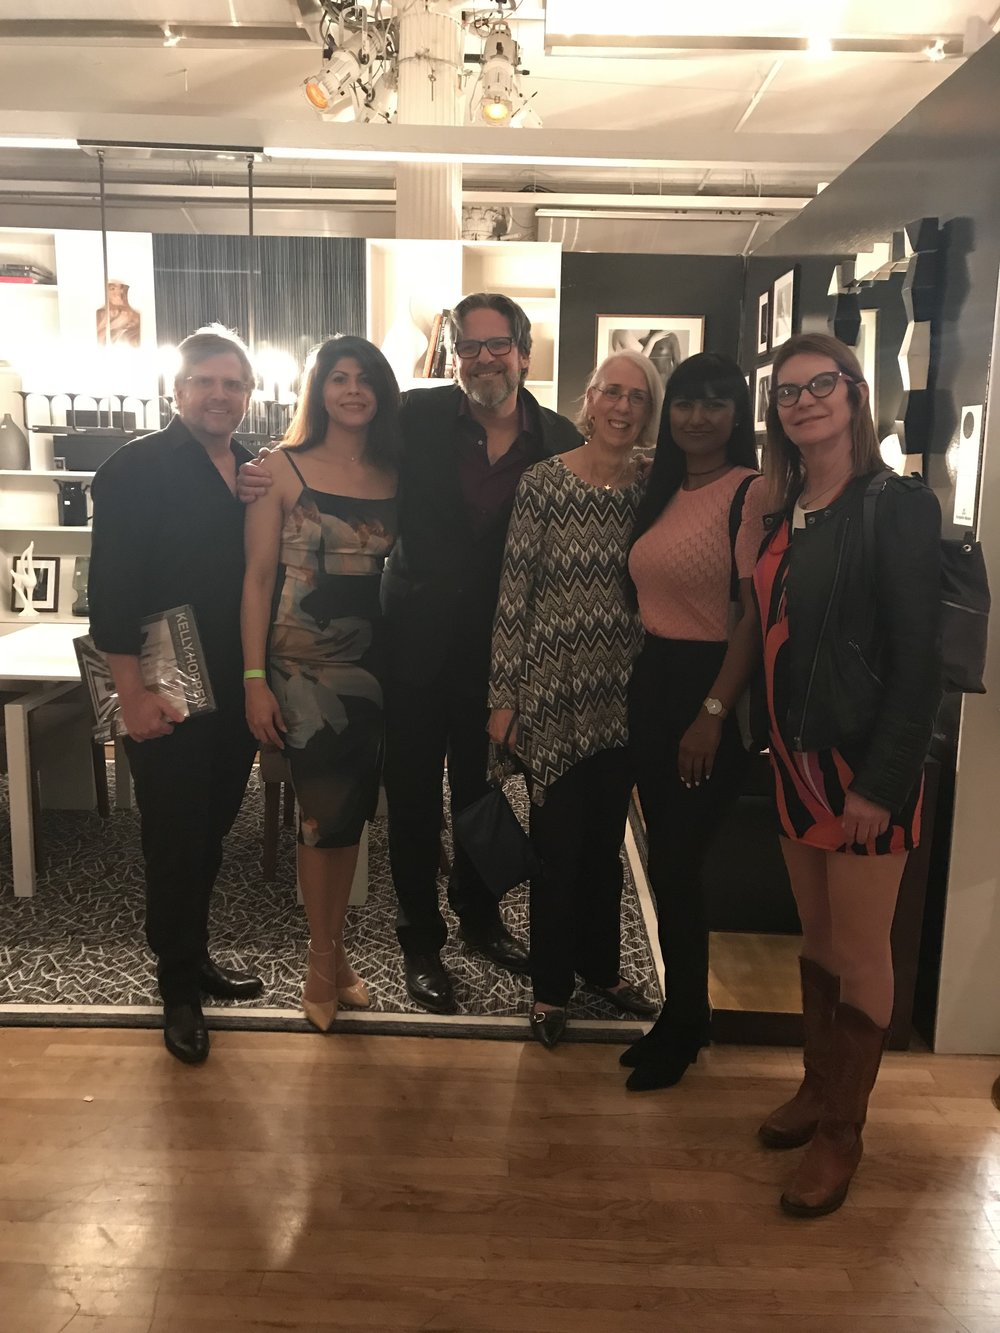 Some IFDA NY Chapter members stopped by and it was wonderful to see them! (From Left to Right: Darrin Varden, Claudia Giselle Tejeda, Richard Segal, Su Hilty, Vanessa Despot, Andrea Warriner)